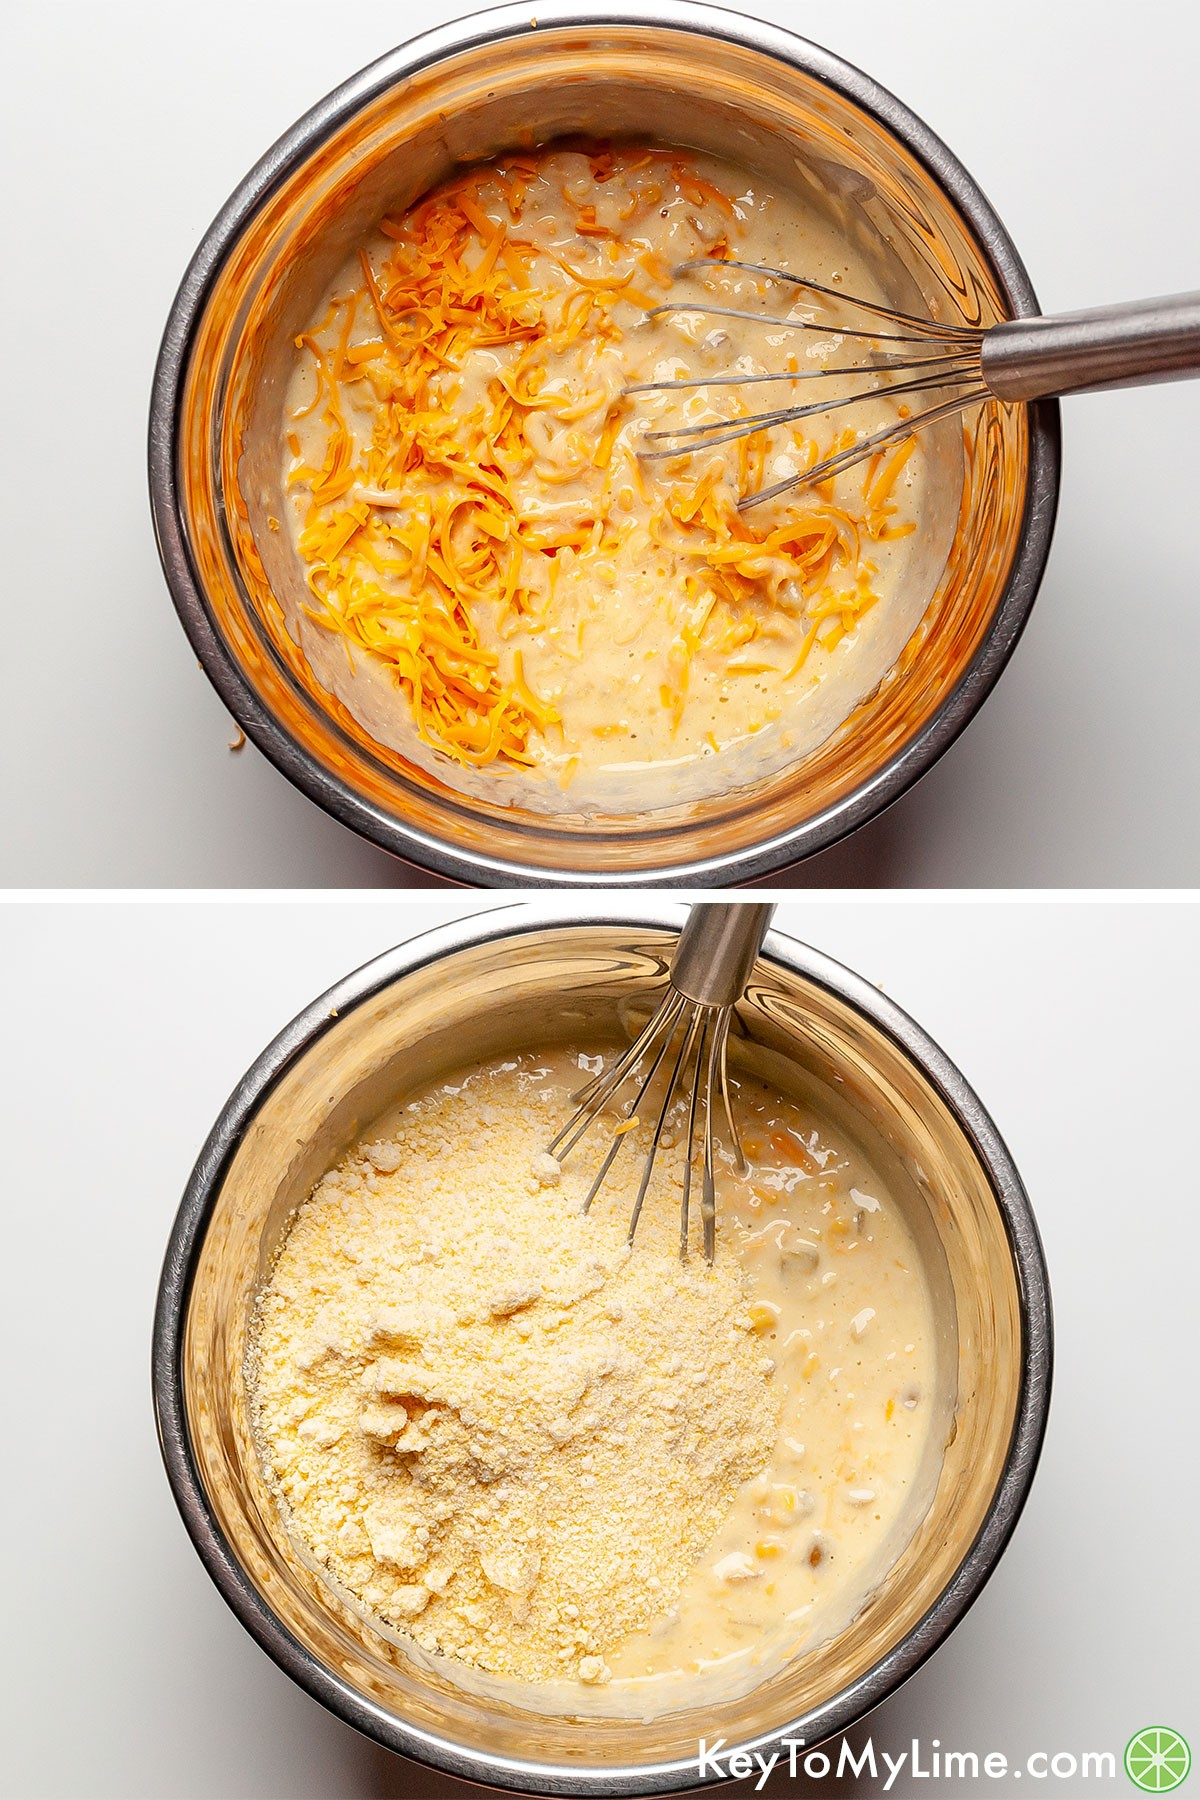 A process collage showing mixing the dry ingredients into the wet ingredients for Mexican cornbread.